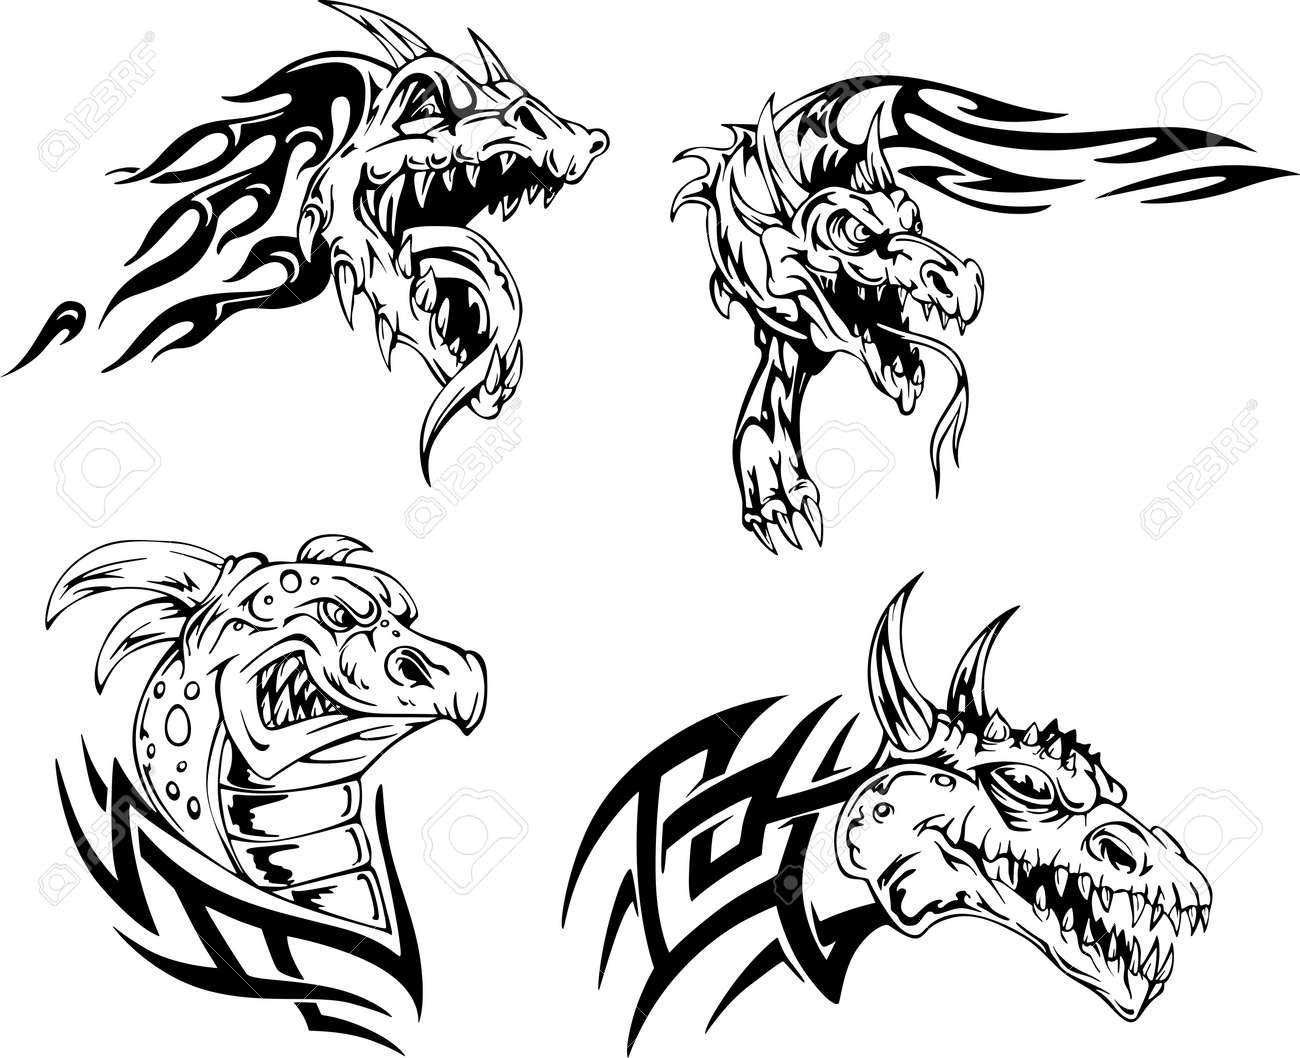 Dessin Dragon Tatouage dragon de têtes - dessins de tatouage. set d'illustrations